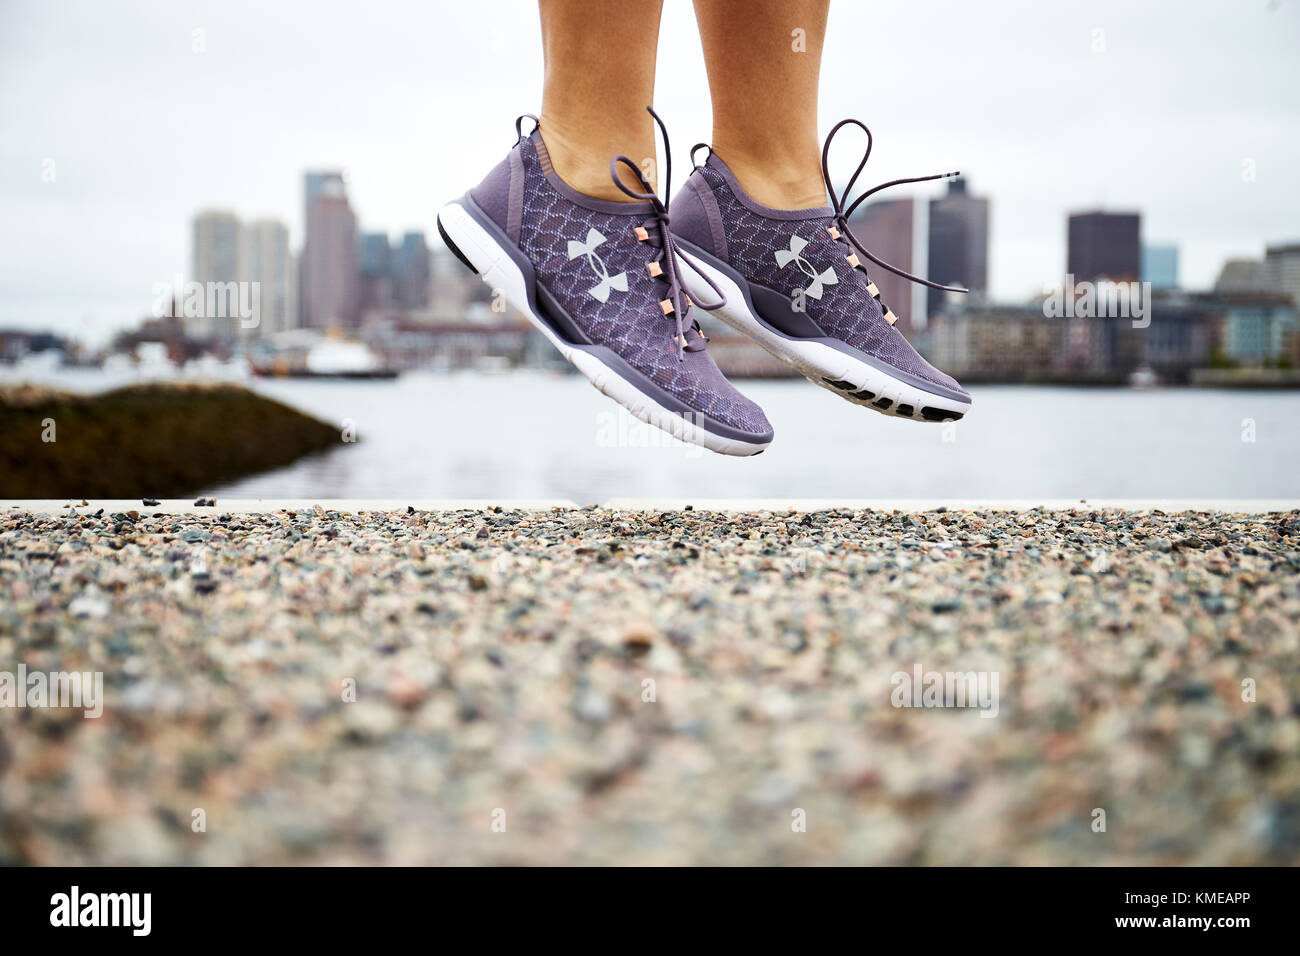 A close up of a pair of Under Armour running shoes. - Stock Image